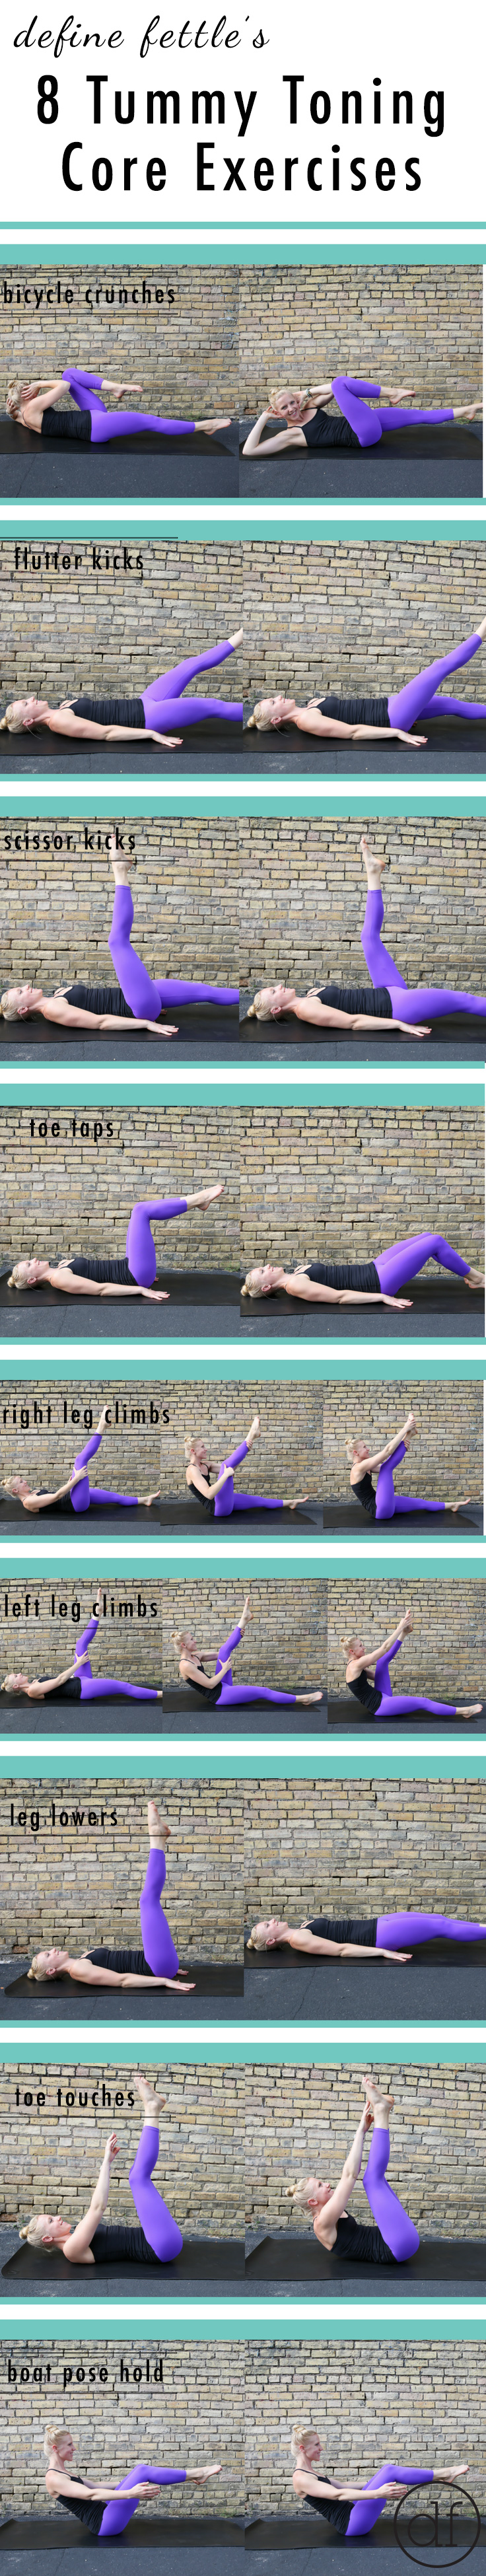 8 tummy toning core exercises, core workout, home workout, core exercises, core strengthening, 15 minute home workout, 15 minute core workout, at home workout, equipment free workout,